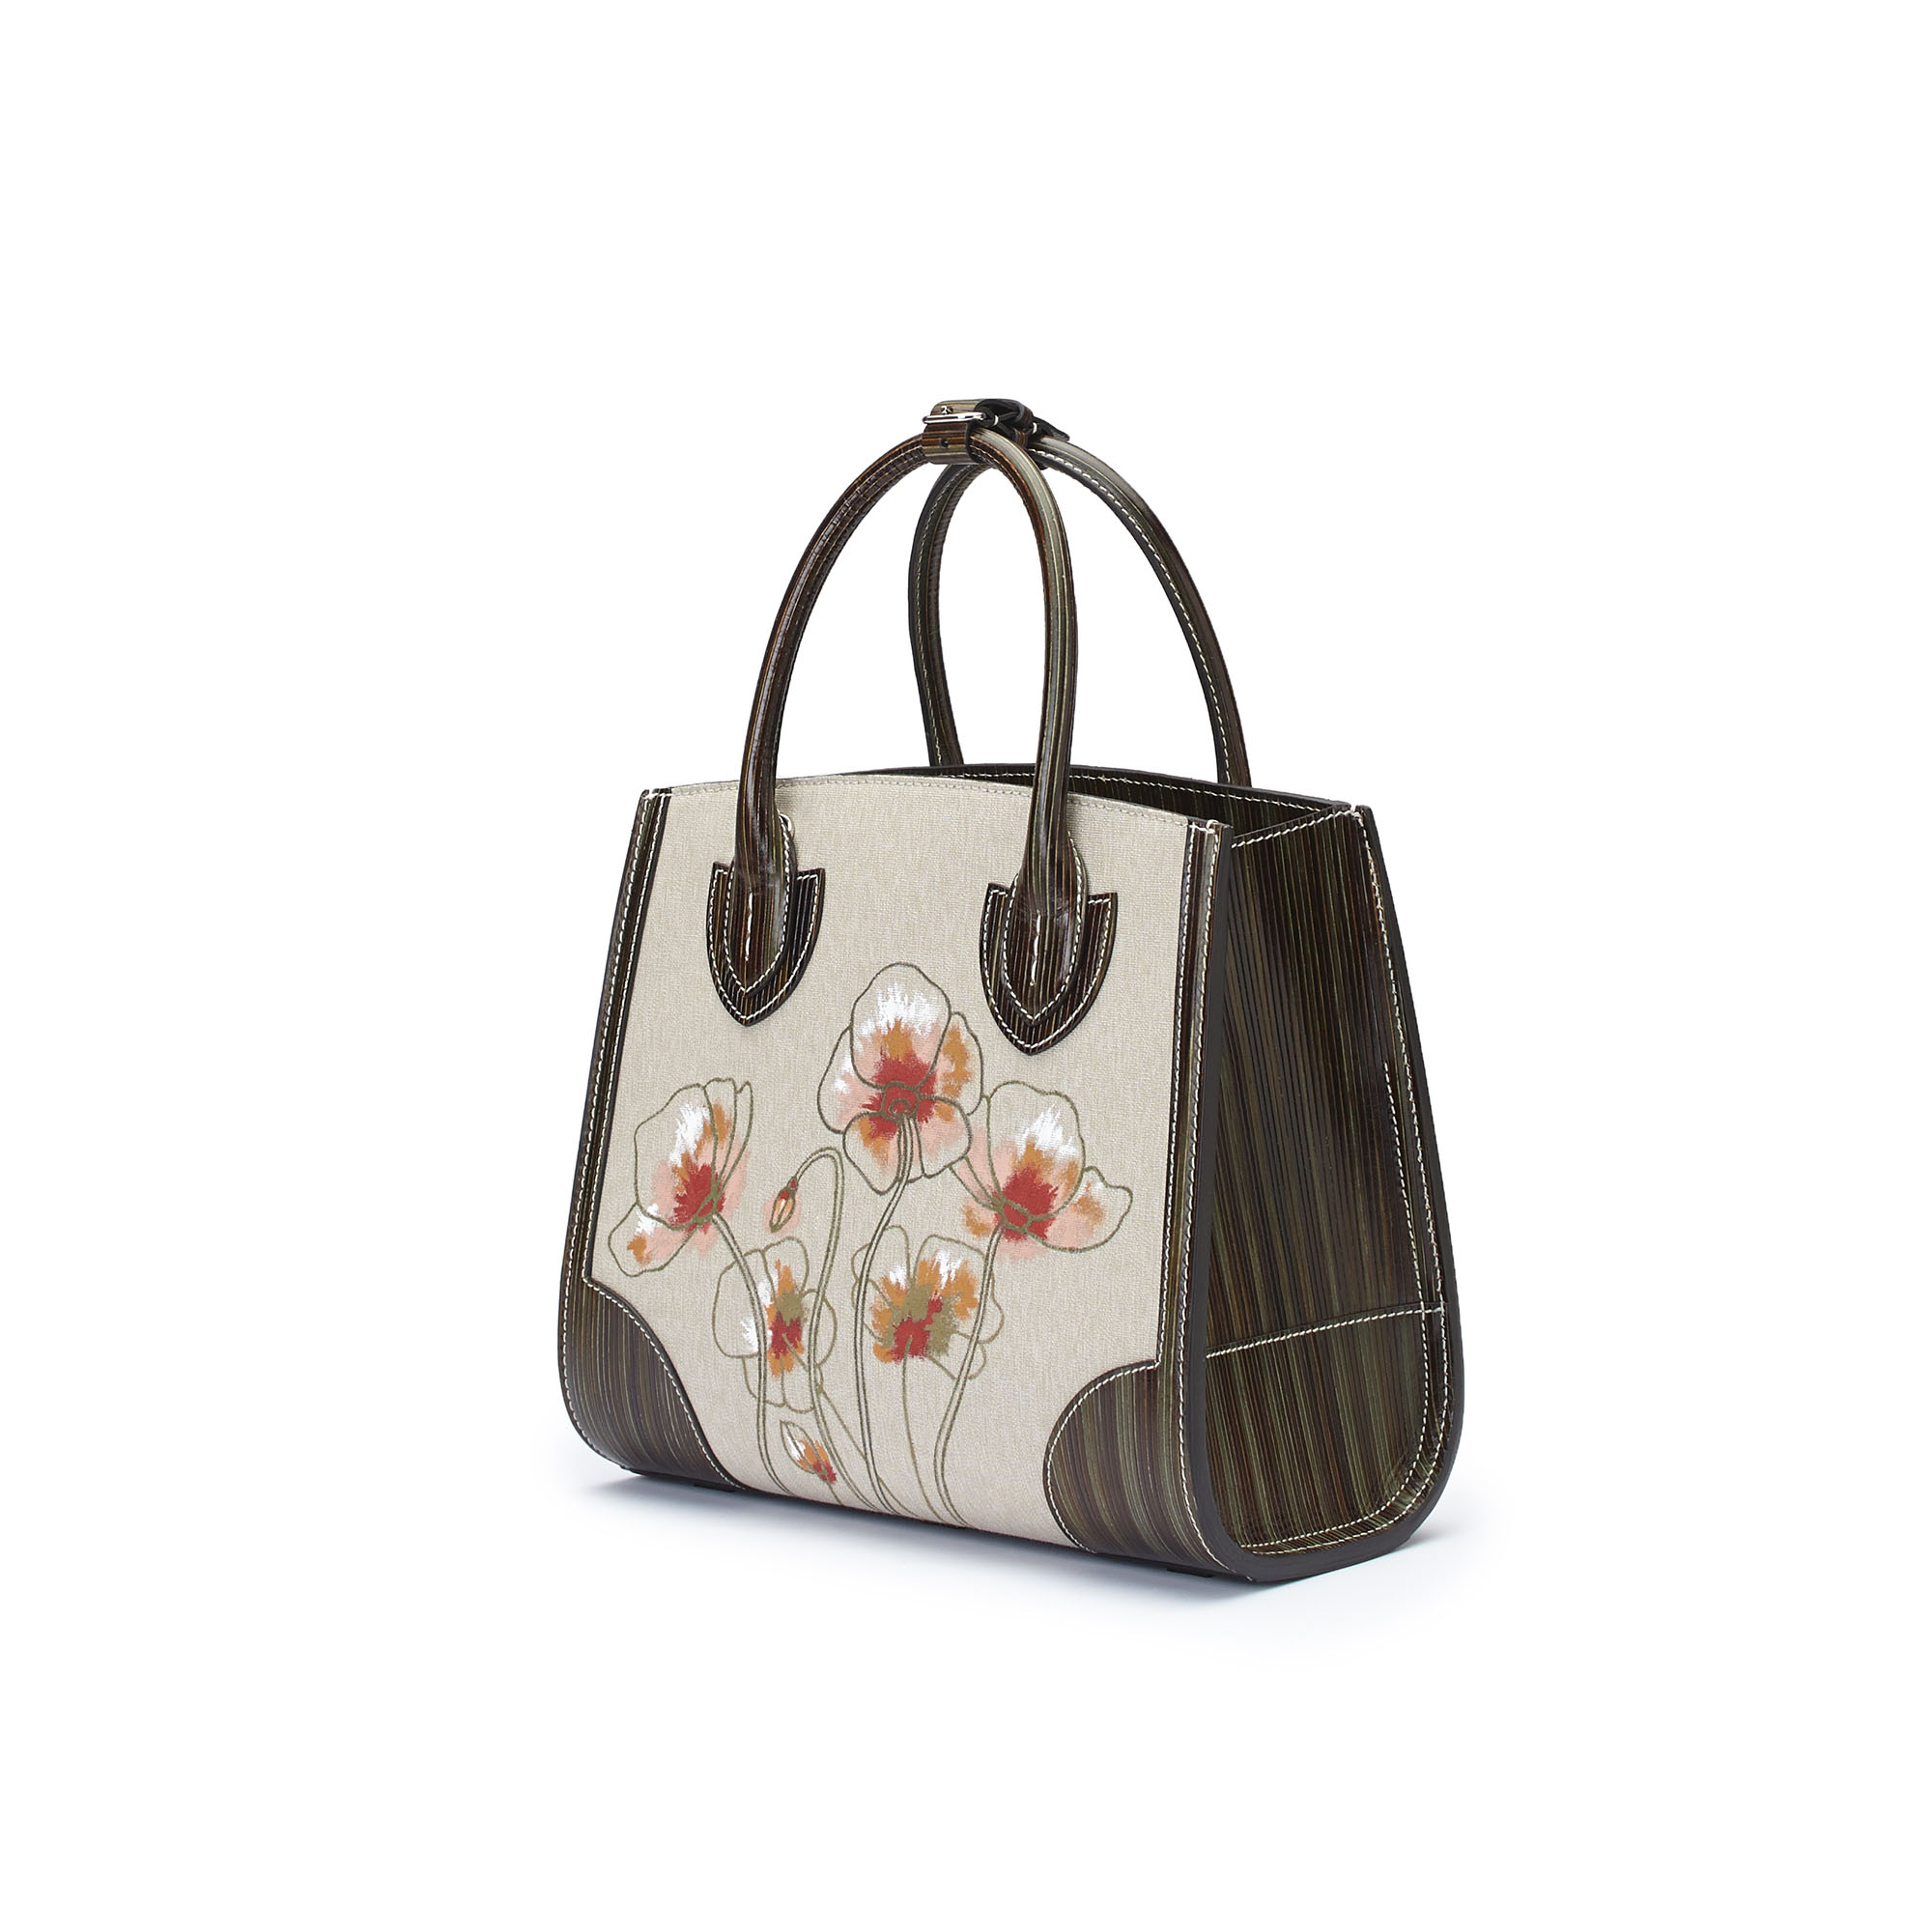 The military green with hand painted poppy flowers wood leather canvas Darcy bag by Bertoni 1949 02